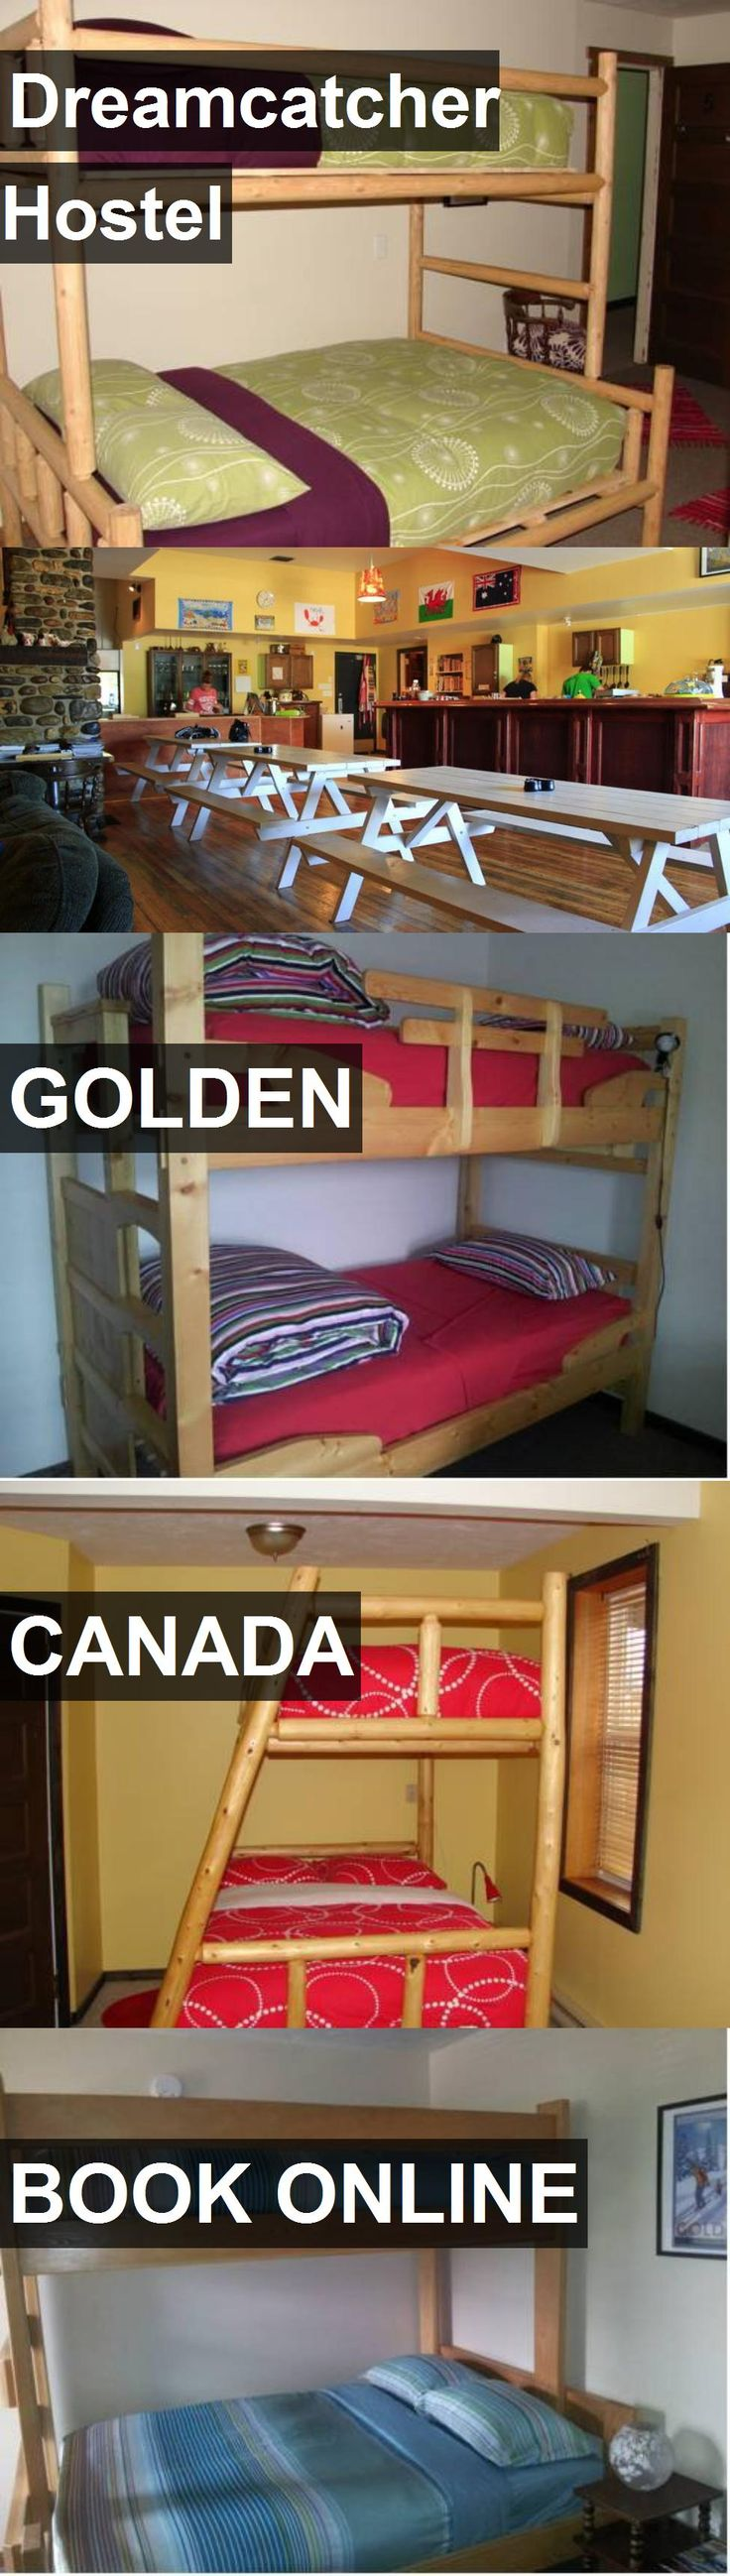 Dreamcatcher Hostel in Golden, Canada. For more information, photos, reviews and best prices please follow the link. #Canada #Golden #travel #vacation #hostel